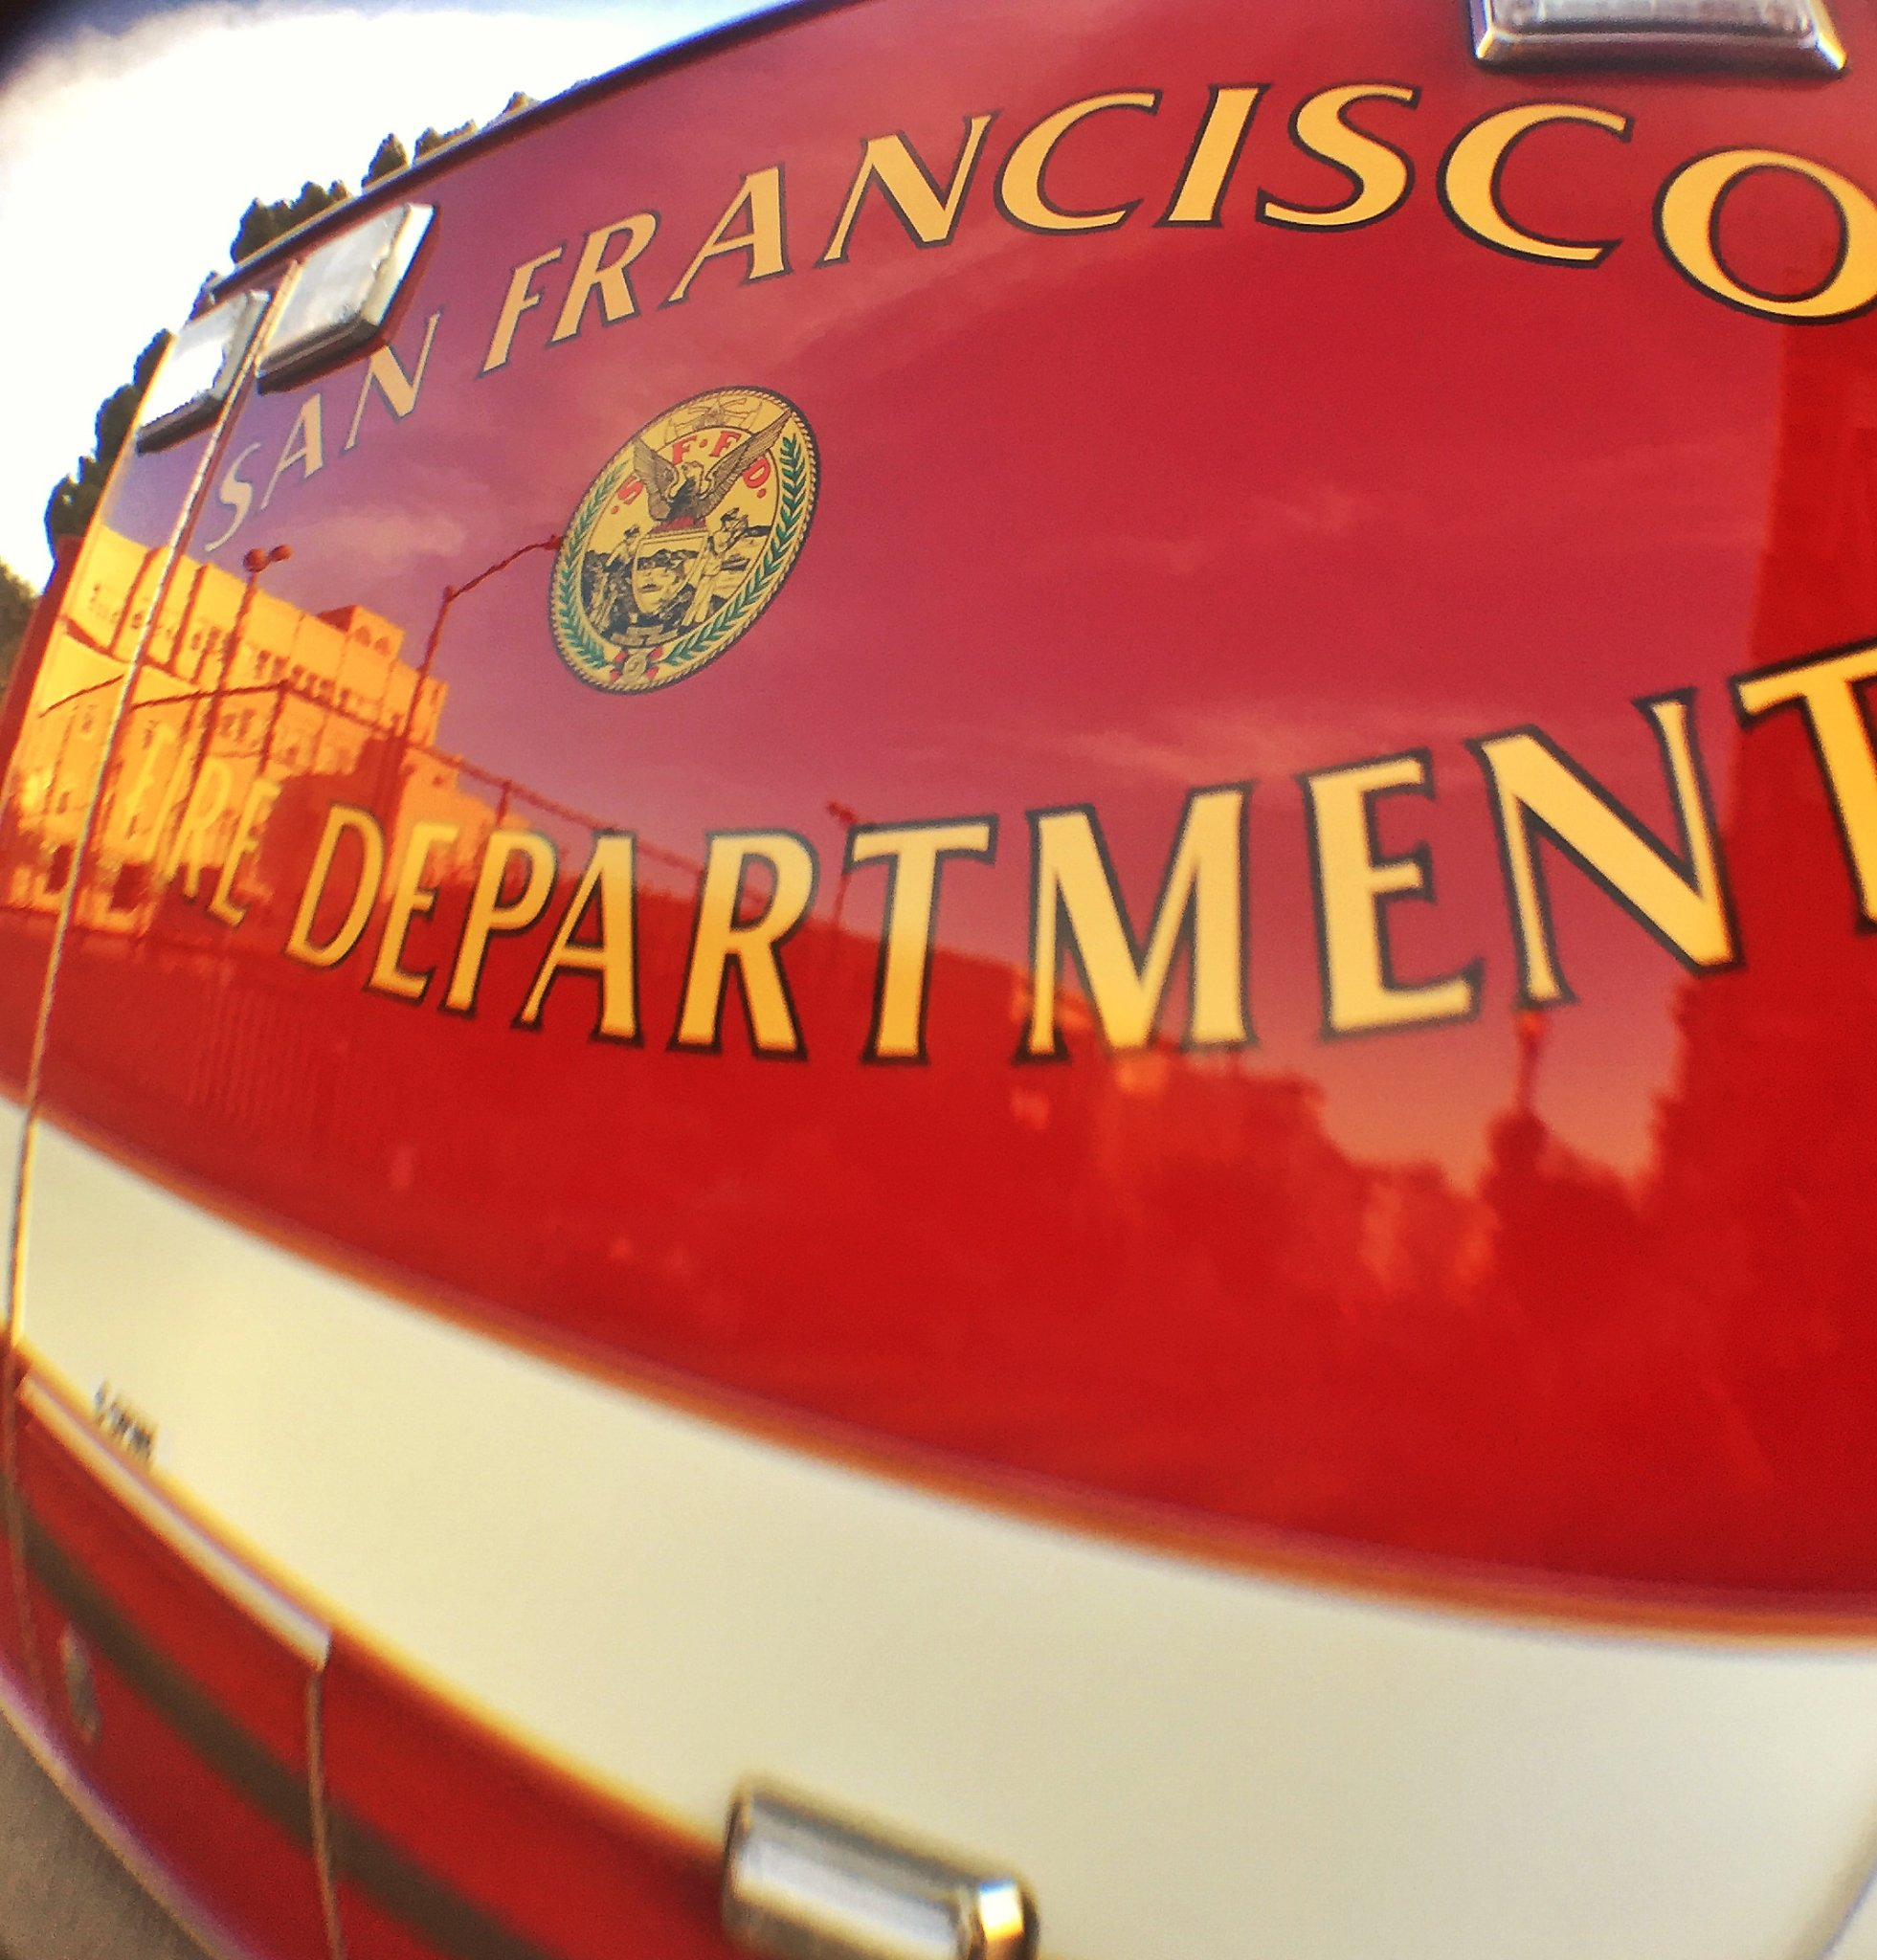 Firefighters rescue SF woman from 4th floor in early morning blaze | San Francisco Gate